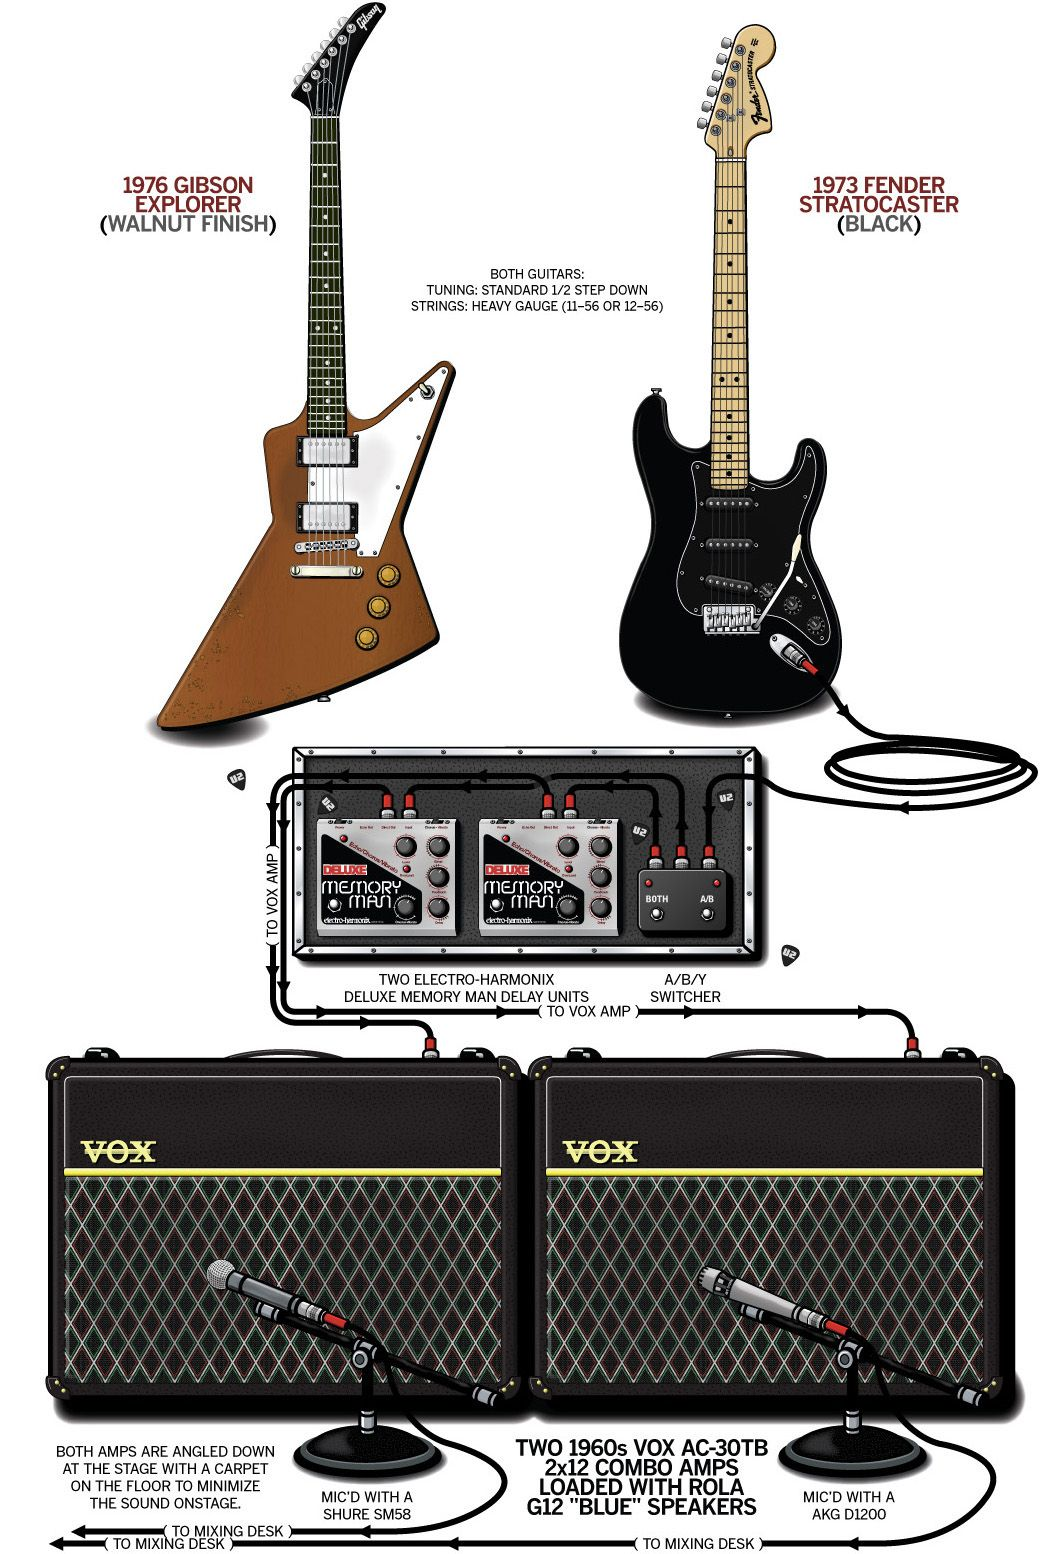 For The Guitar Amplifier Wire Diagram Rig Diagrams Wiring Scematic A Detailed Gear Of Edges 1981 U2 Stage Setup That